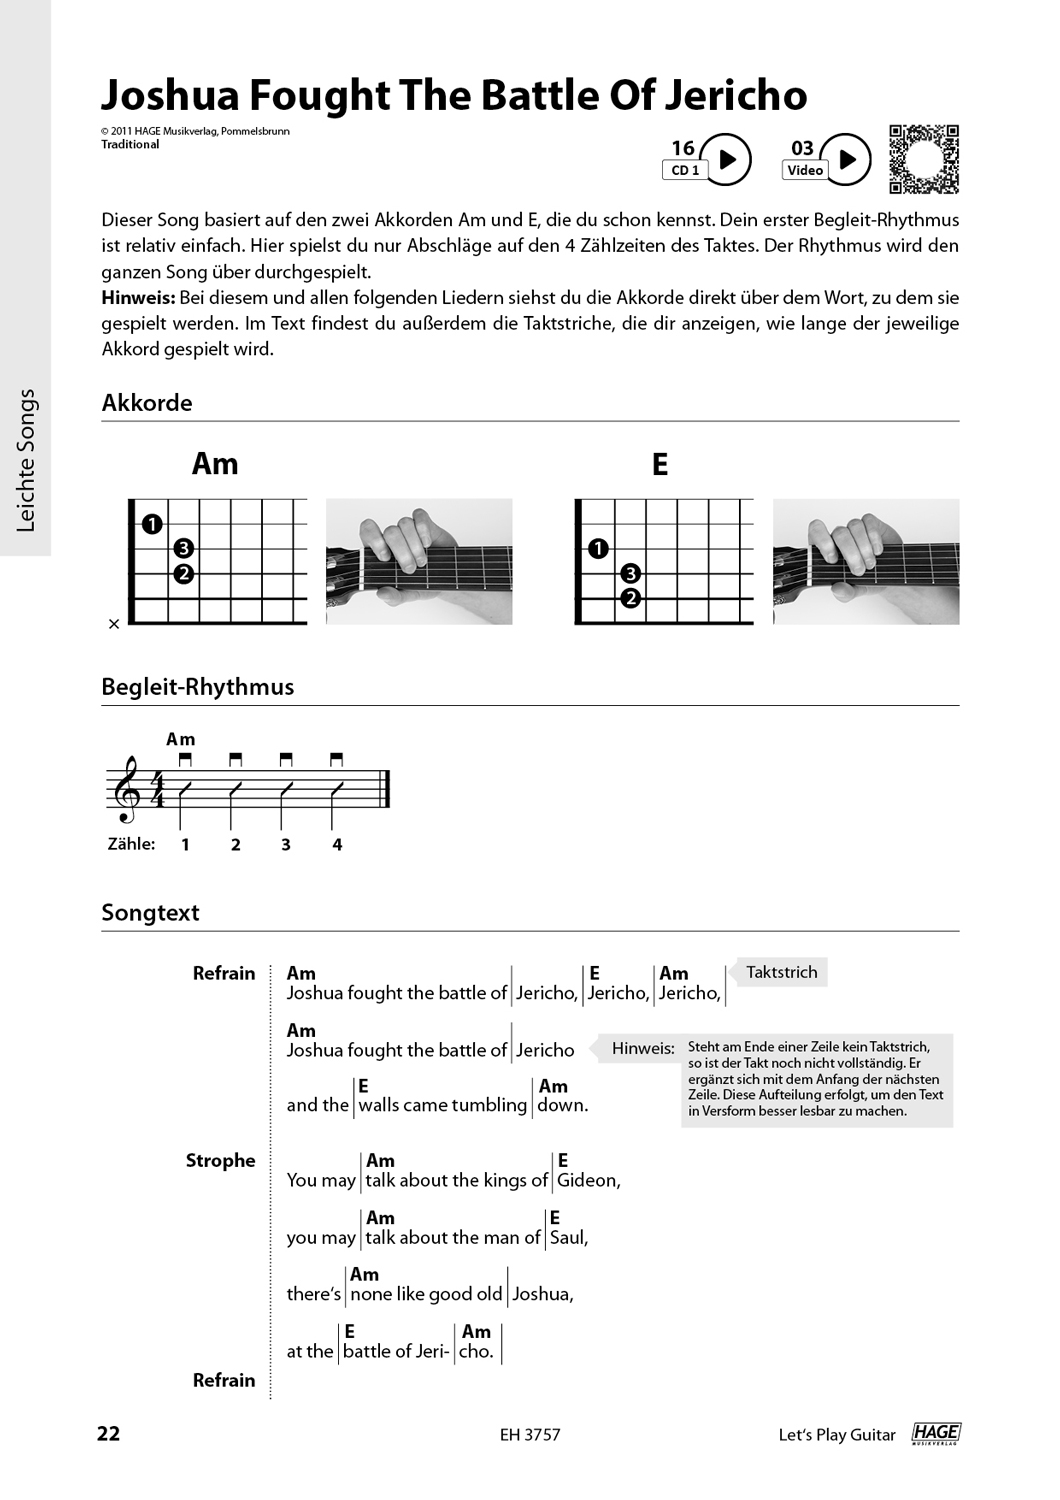 Let's Play Guitar Volume 1 (with 2 CDs and QR Codes) Pages 8